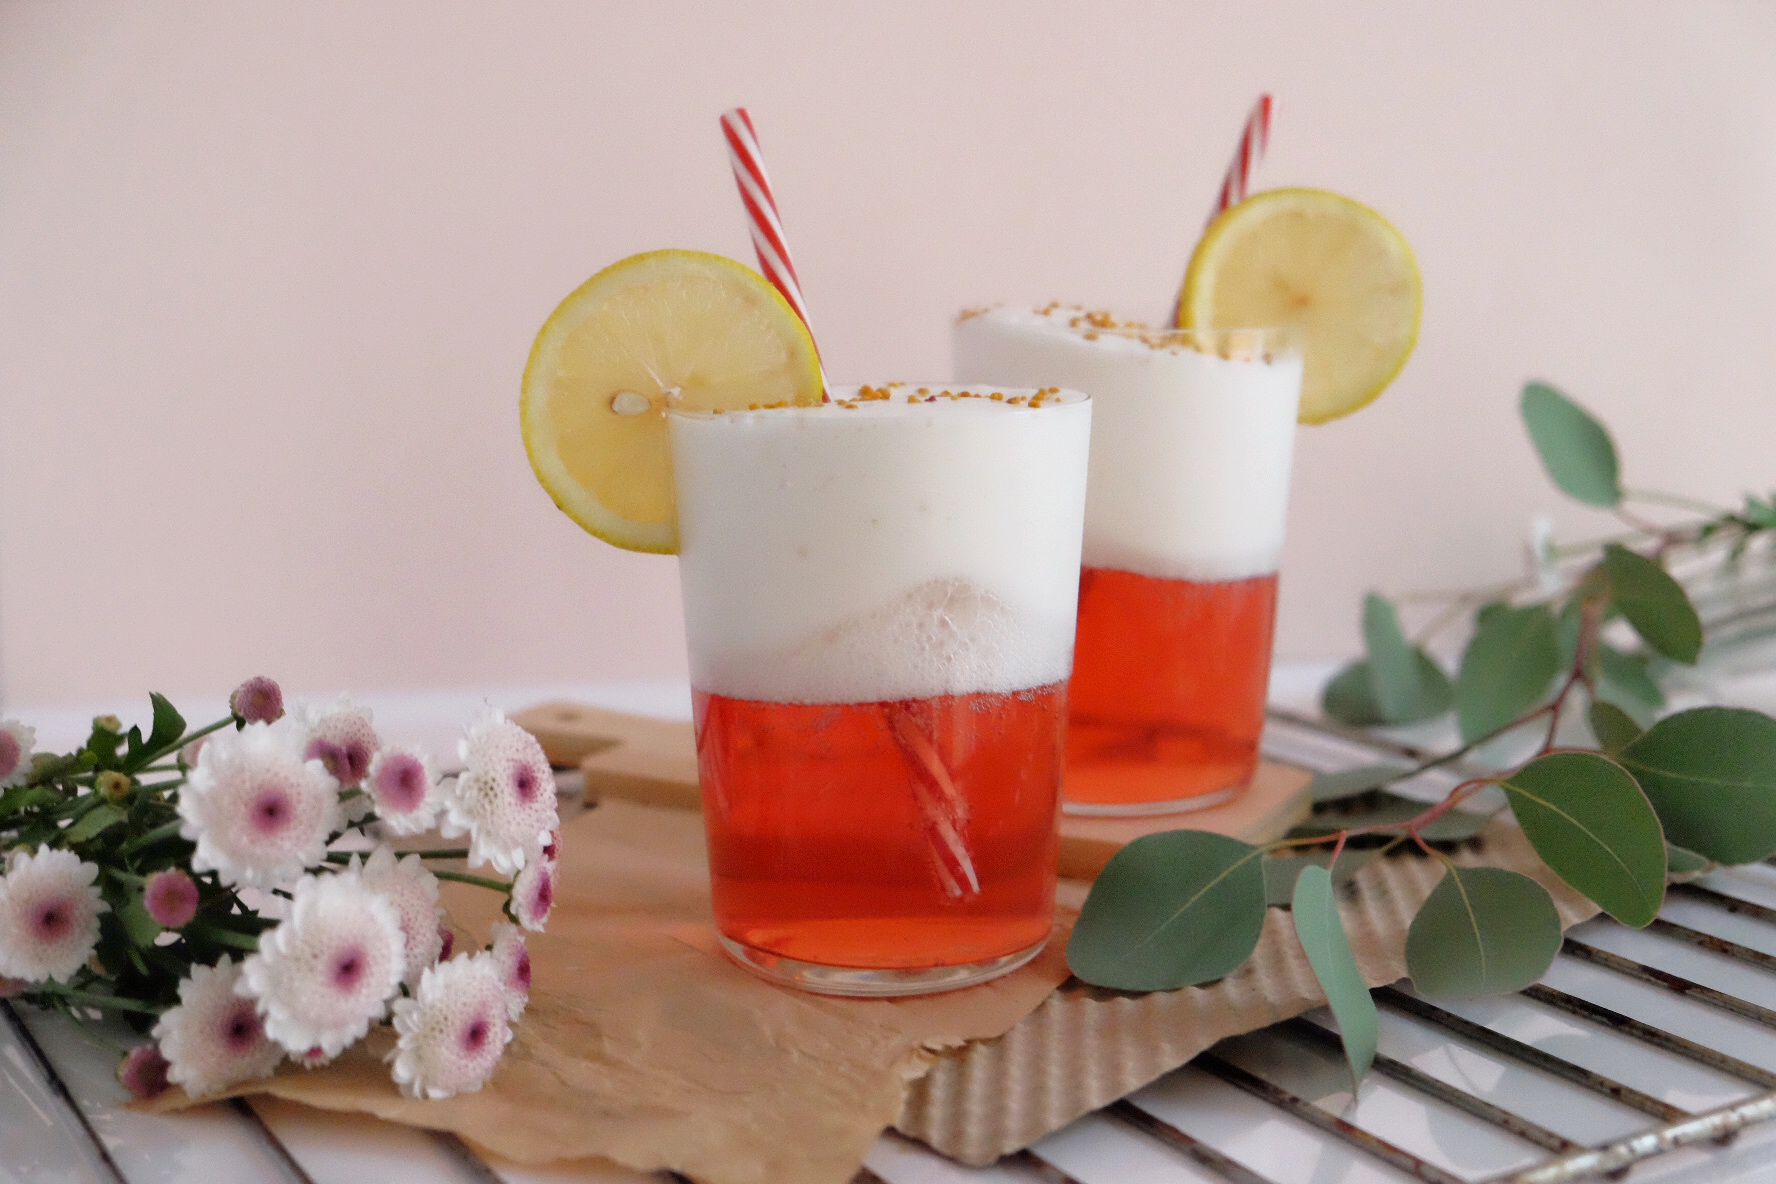 Cocktail d'amande et de canneberge